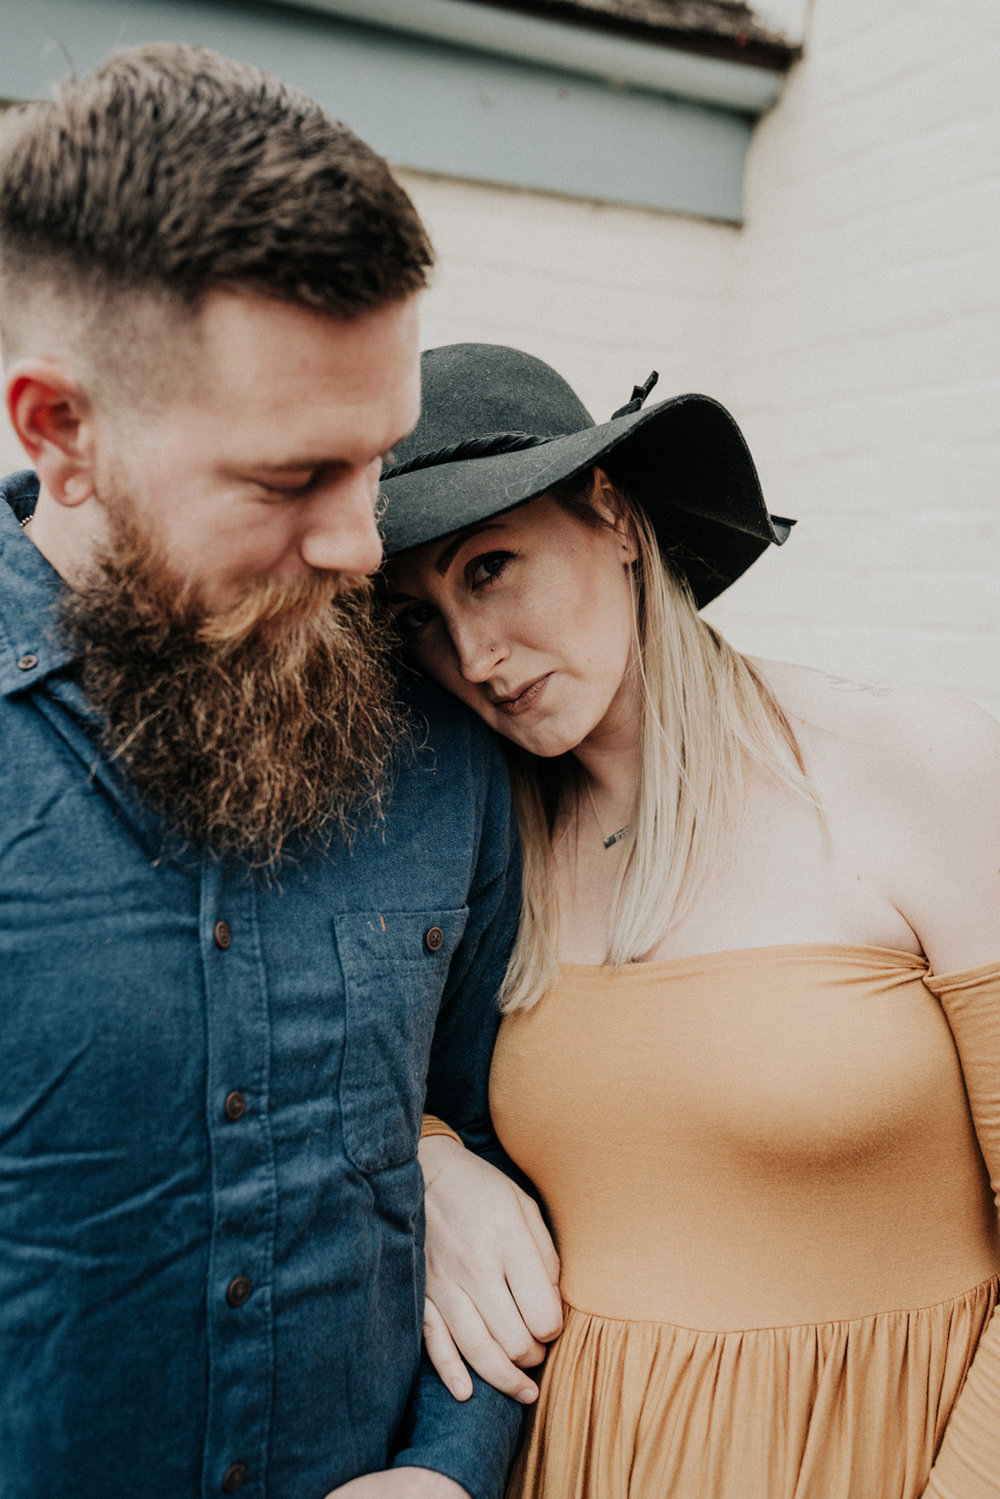 KyleWillisPhoto-Kyle-Willis-Photography-Parvin-State-Park-Pittsgrove-Township-New-Jersey-Maternity-Session-Lake-Pregnant-Engagement-Hipster-Photographer-Philadelphia-Wedding